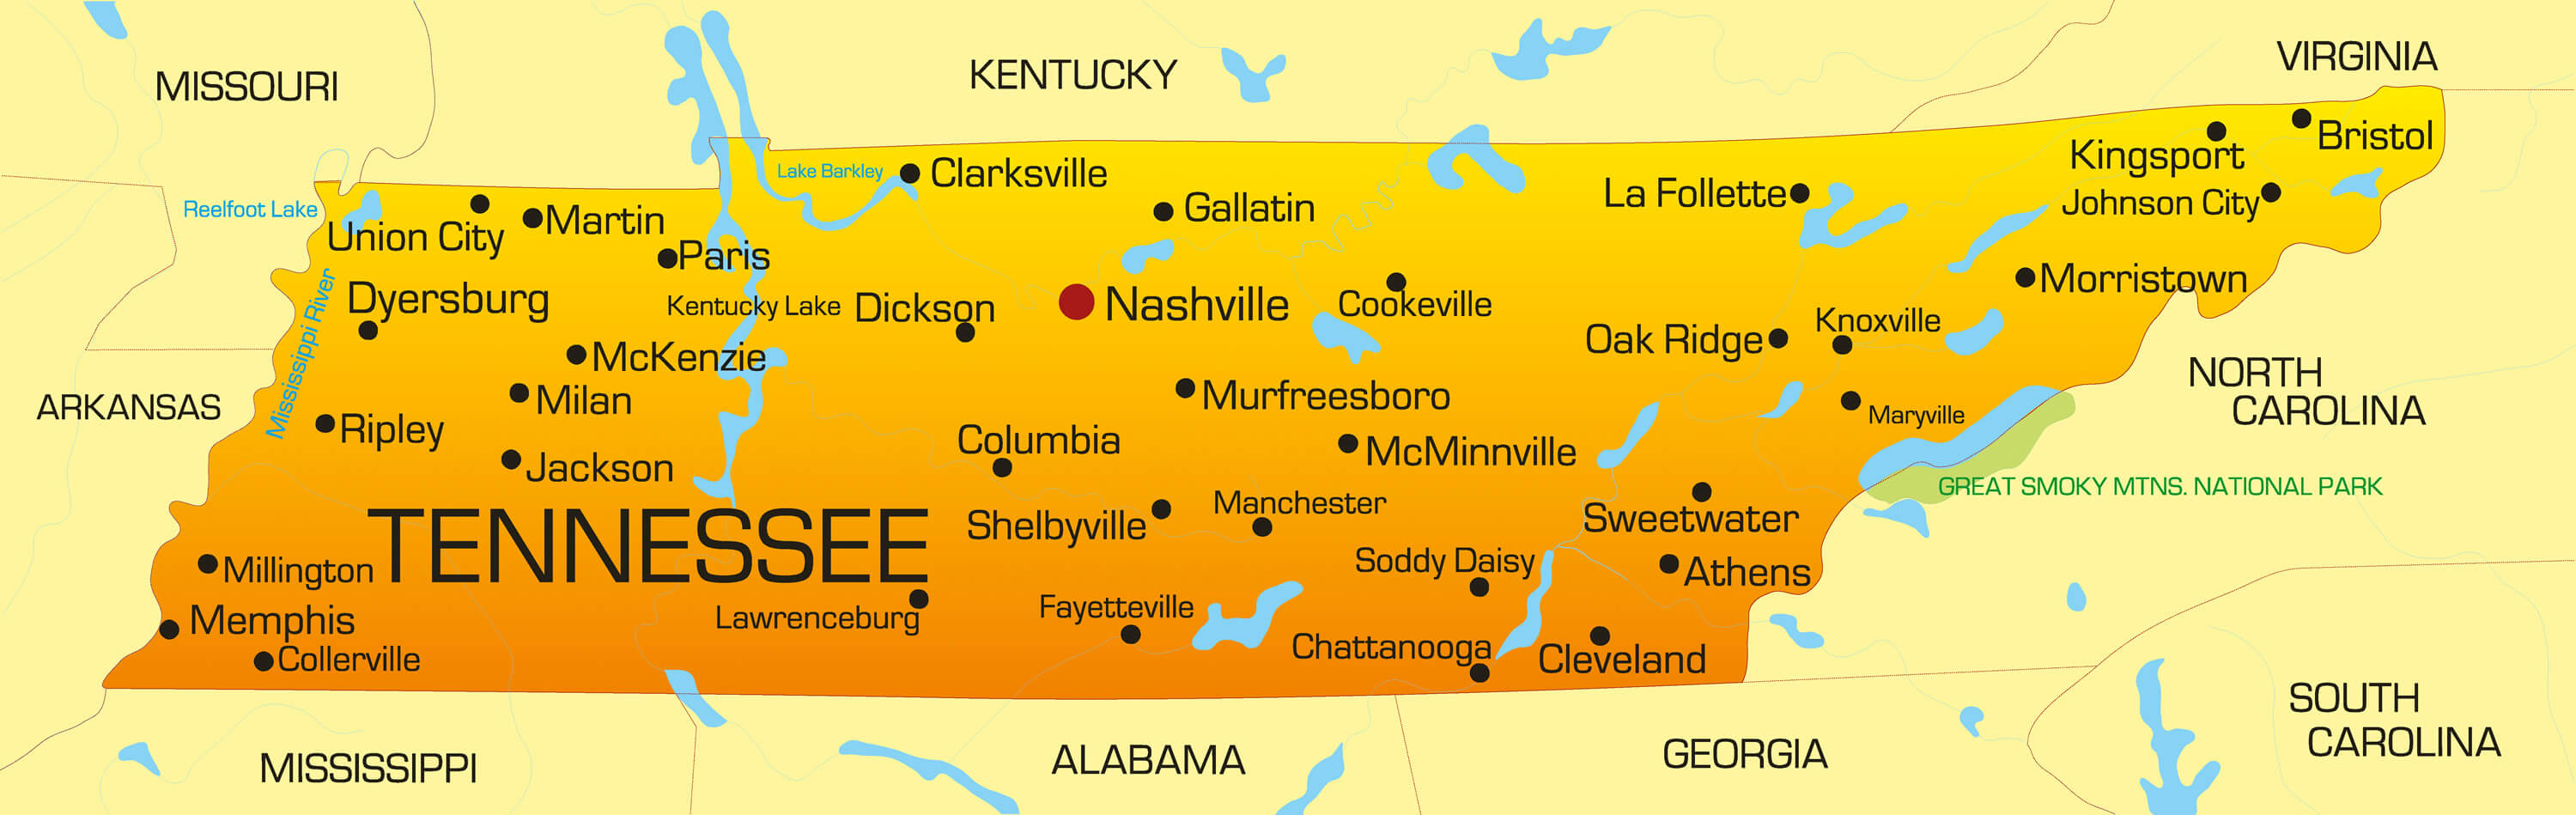 Tennessee Map - Guide of the World